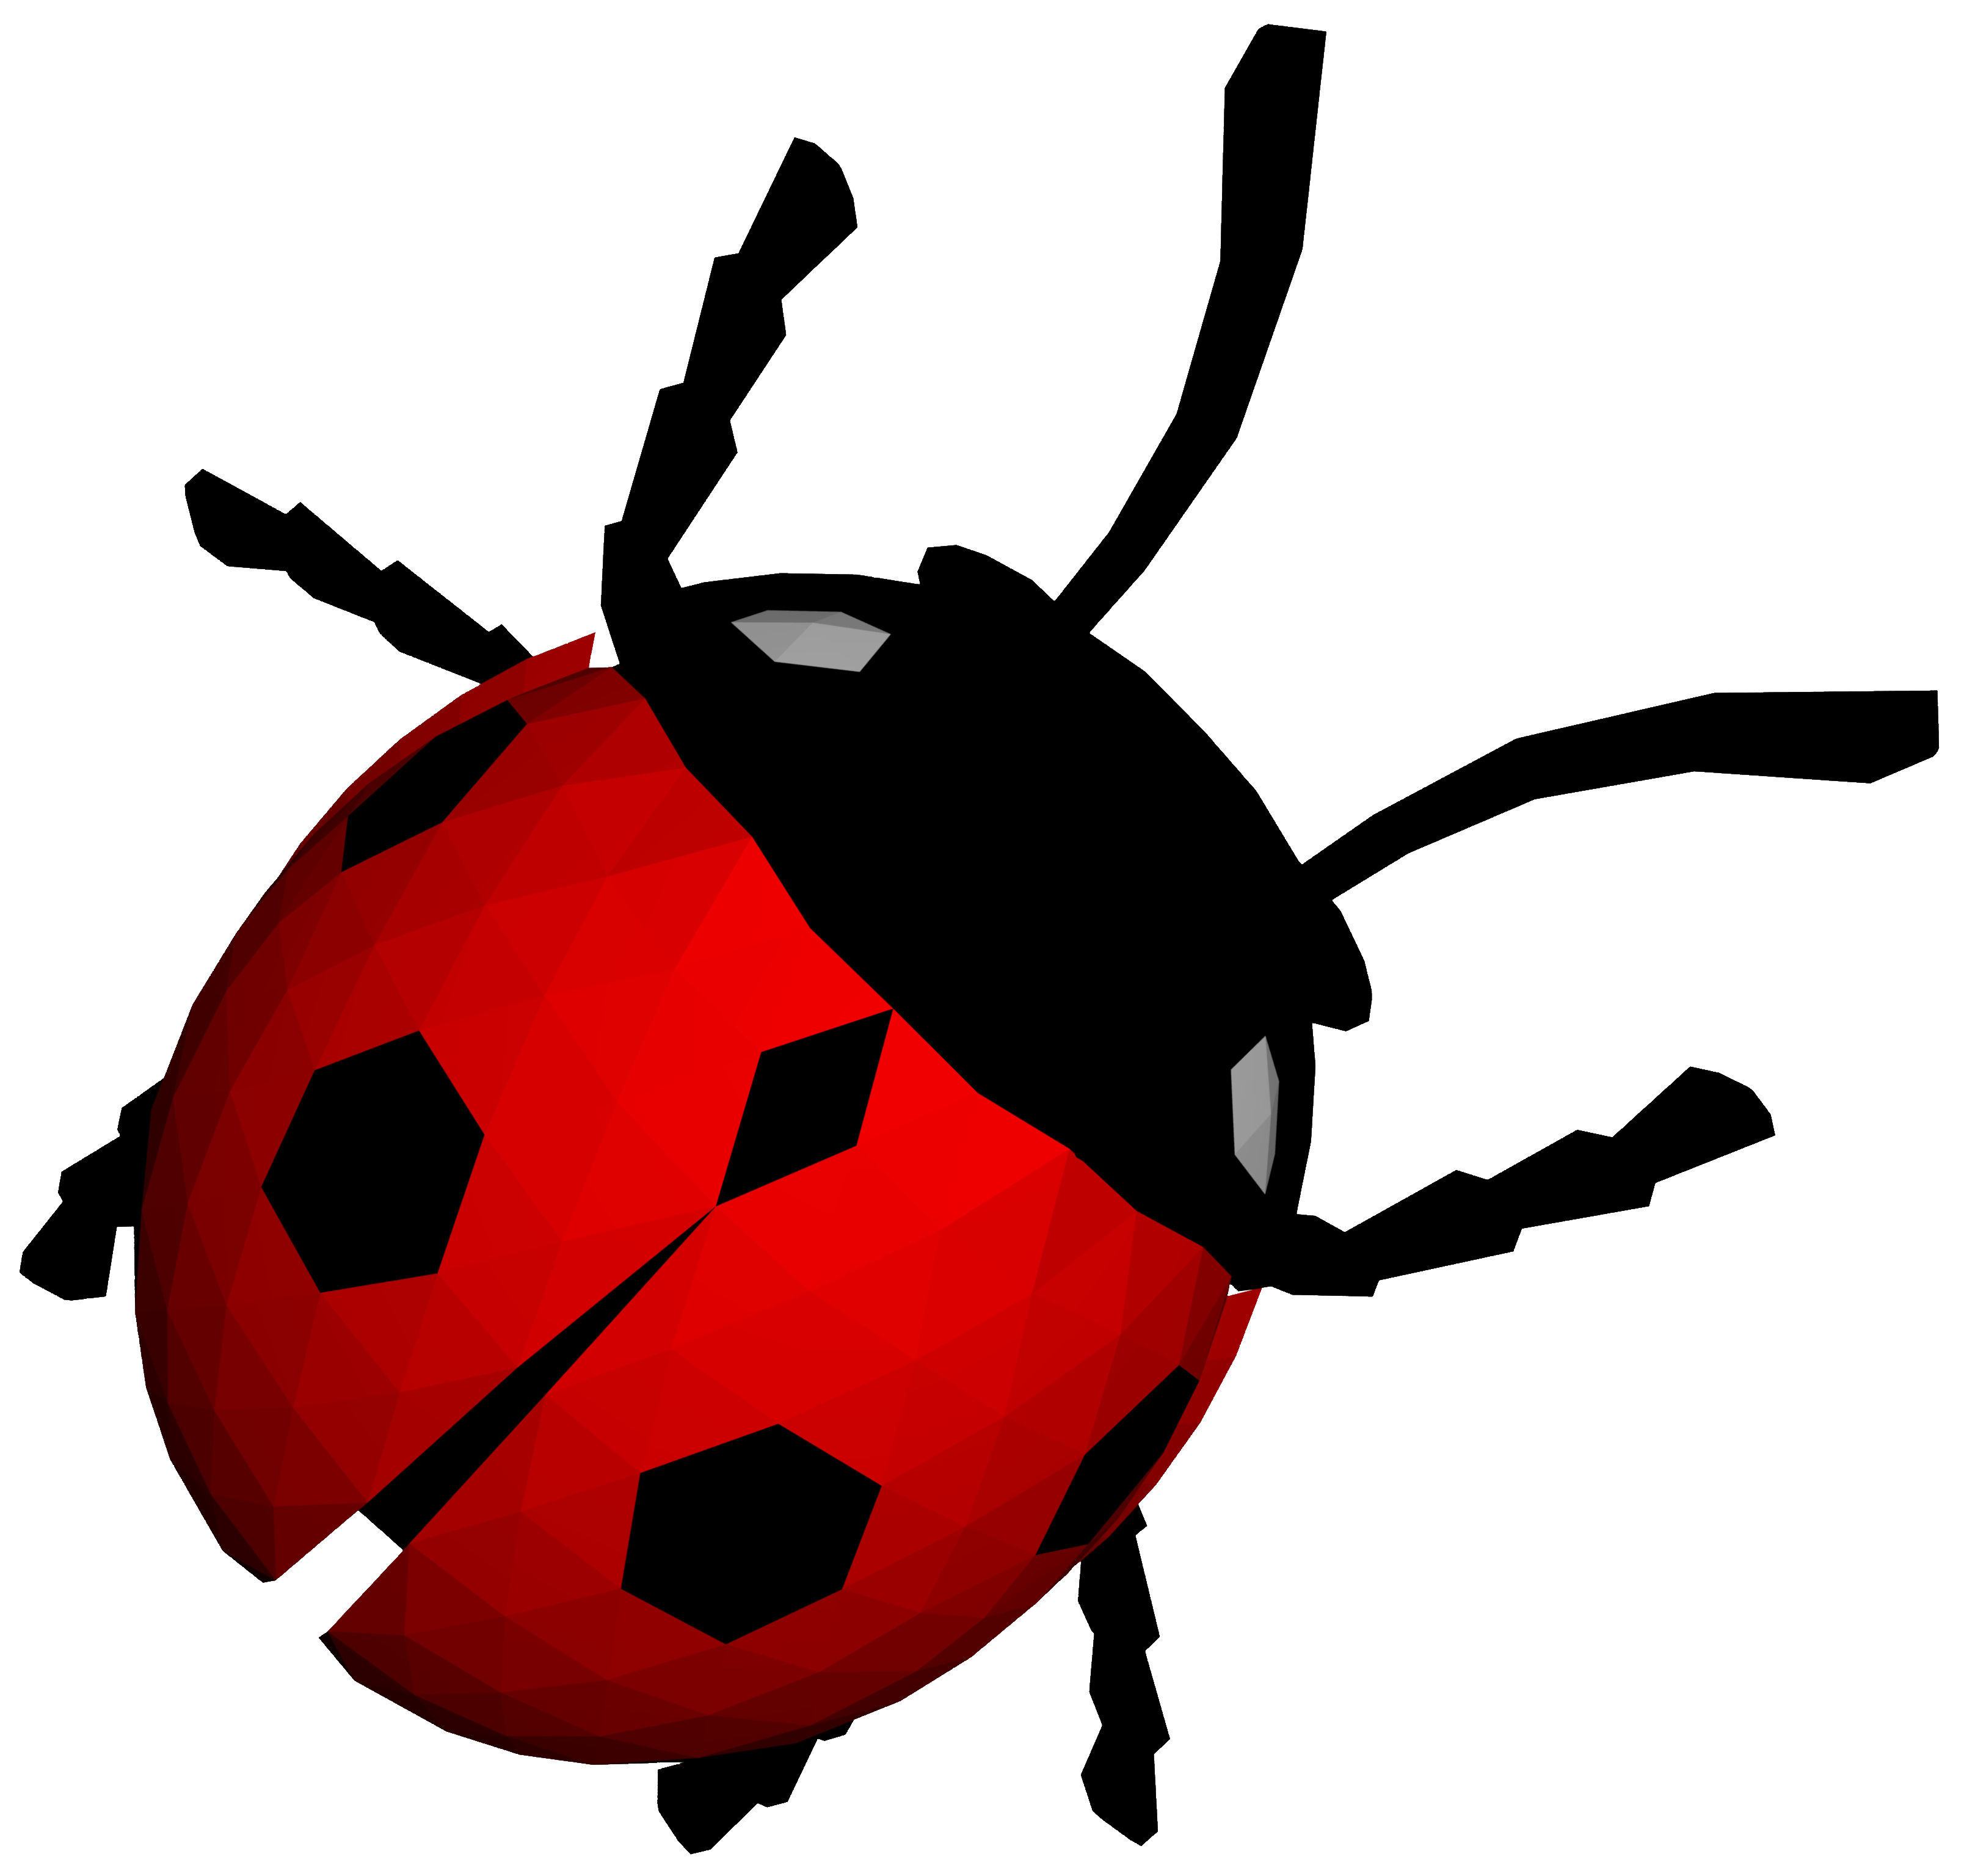 Ladybug Simple PNG Images